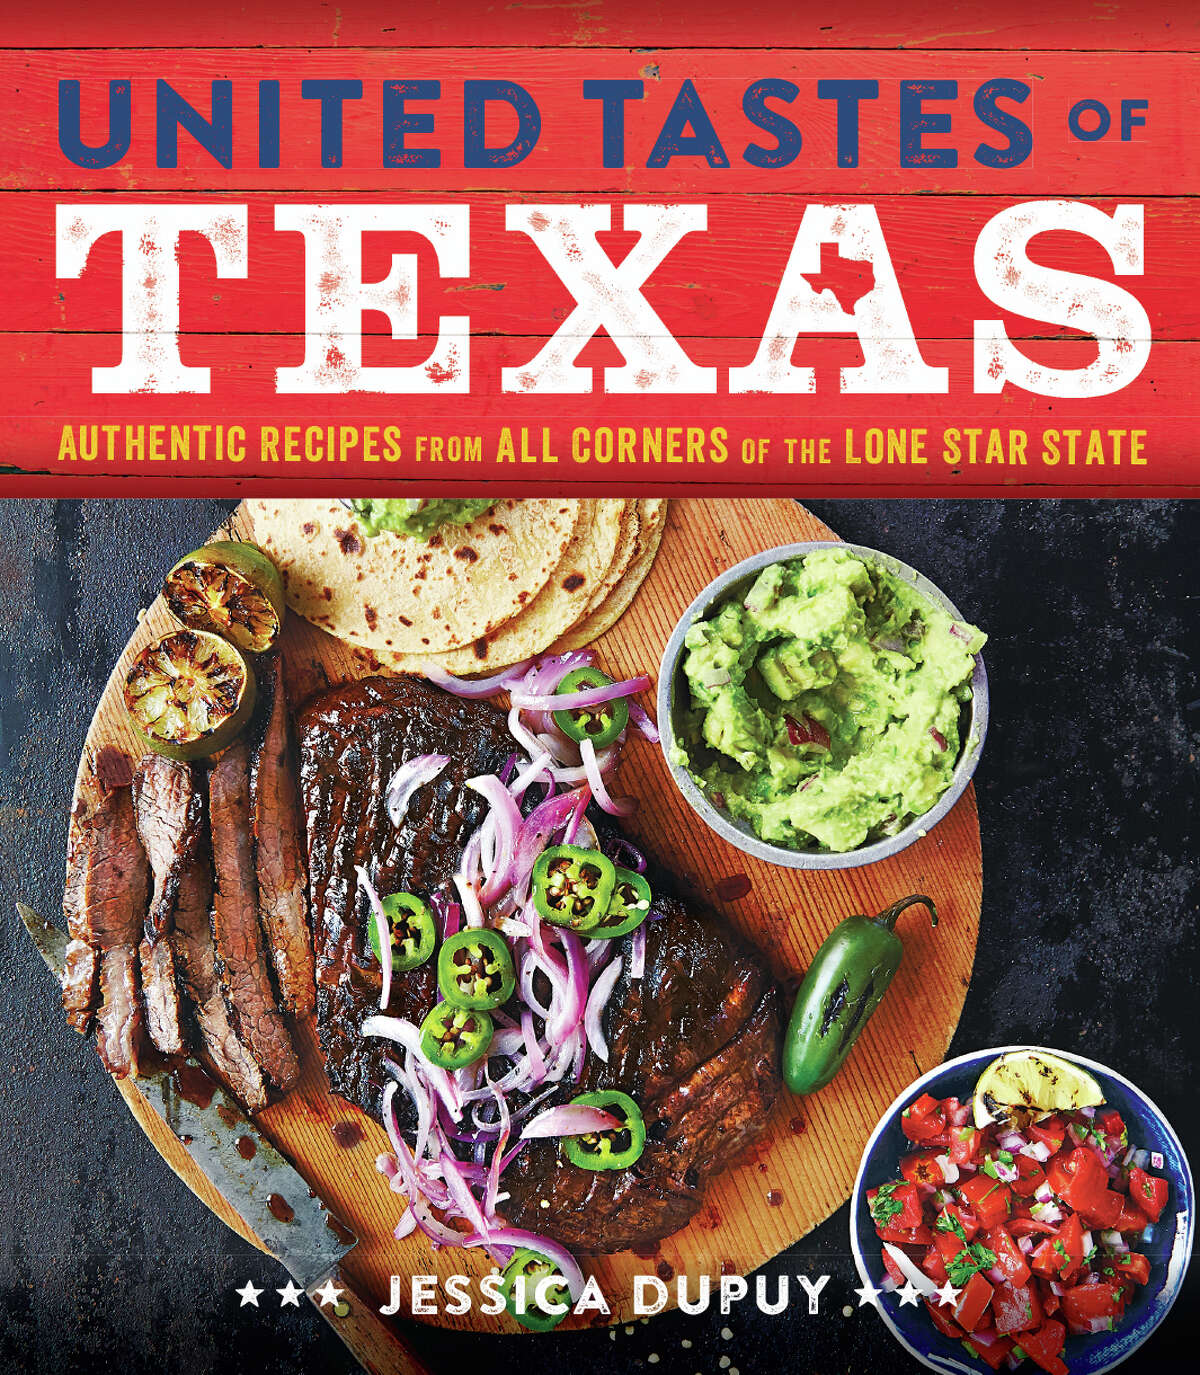 """cover: """"United Tastes of Texas: Authentic Recipes from All Corners of the Lone Star State"""" by Jessica Dupuy (Oxmooor House, $24.95)."""